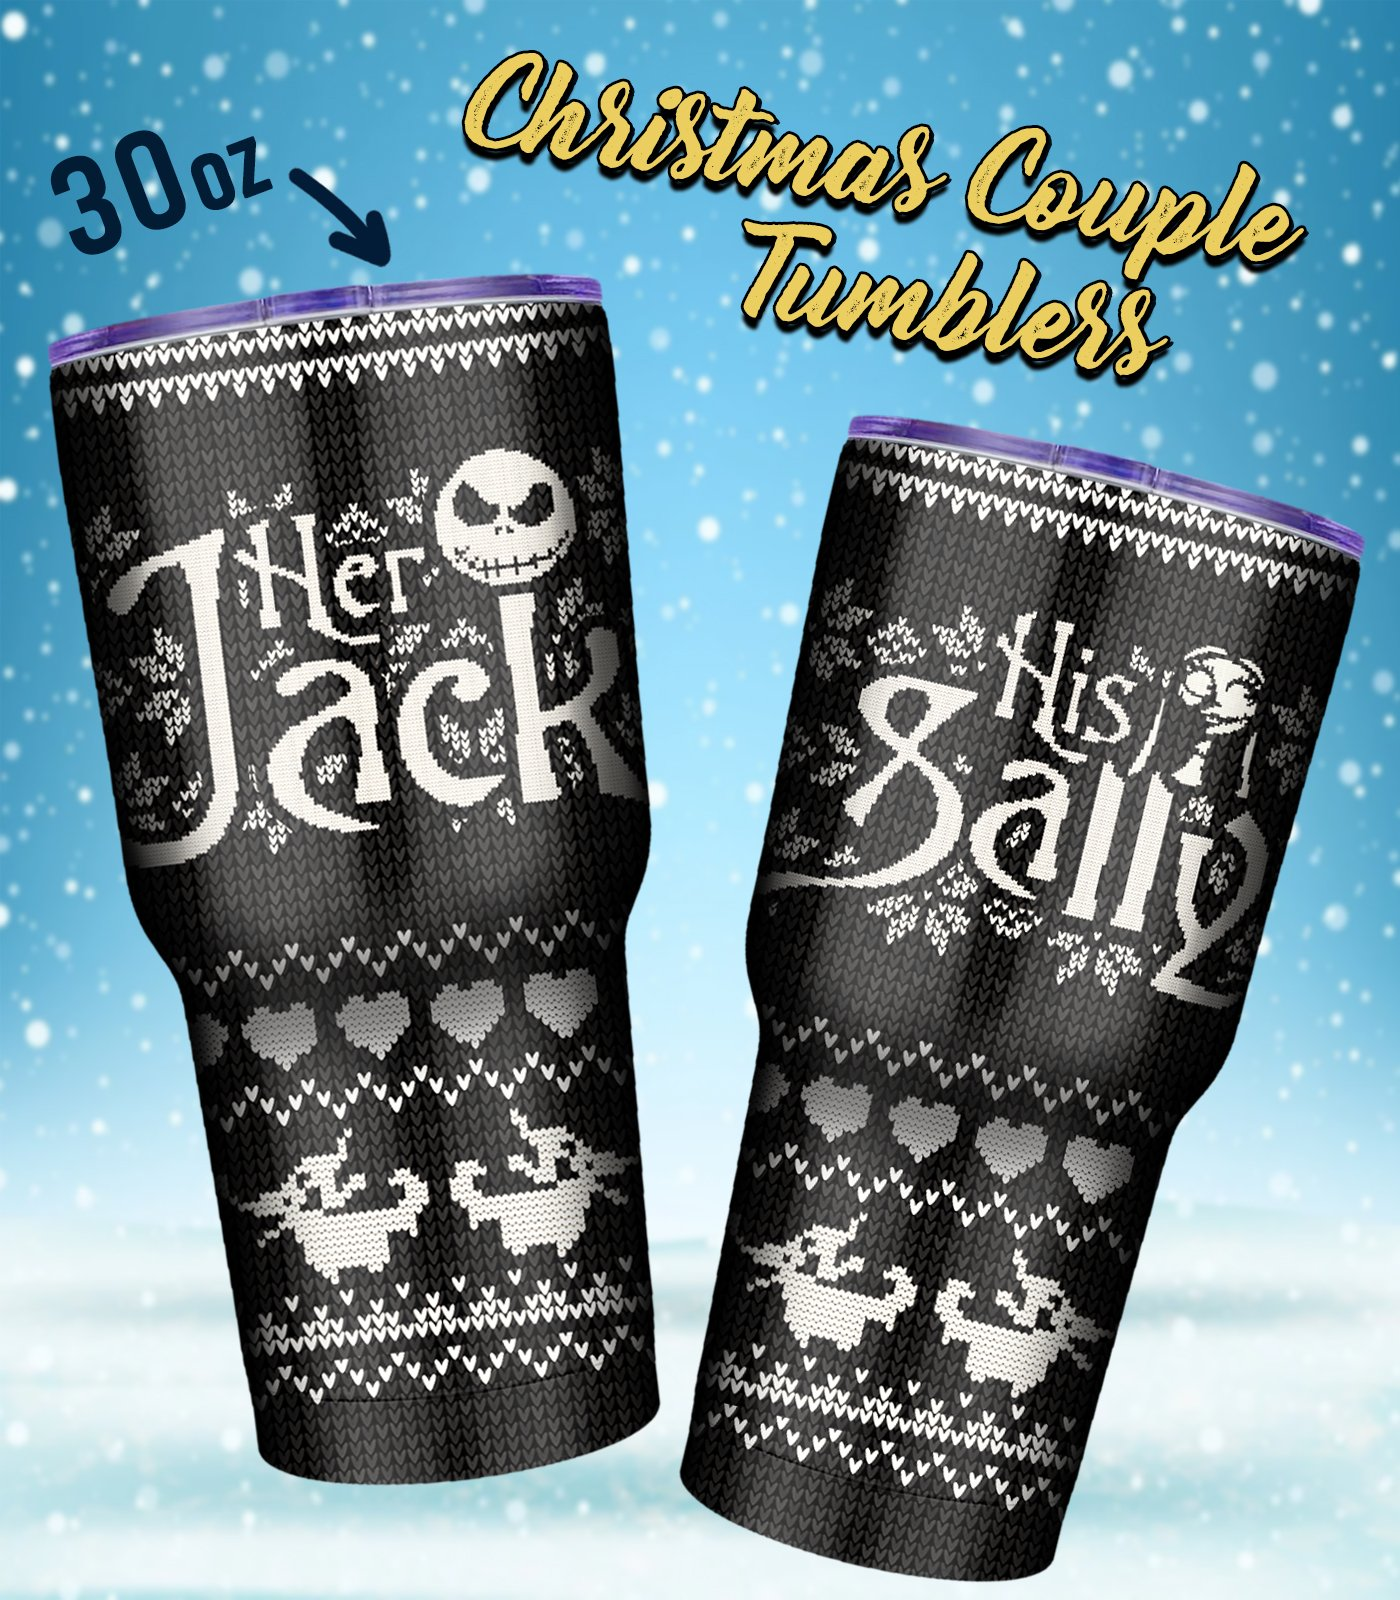 Jack and sally couple tumbler